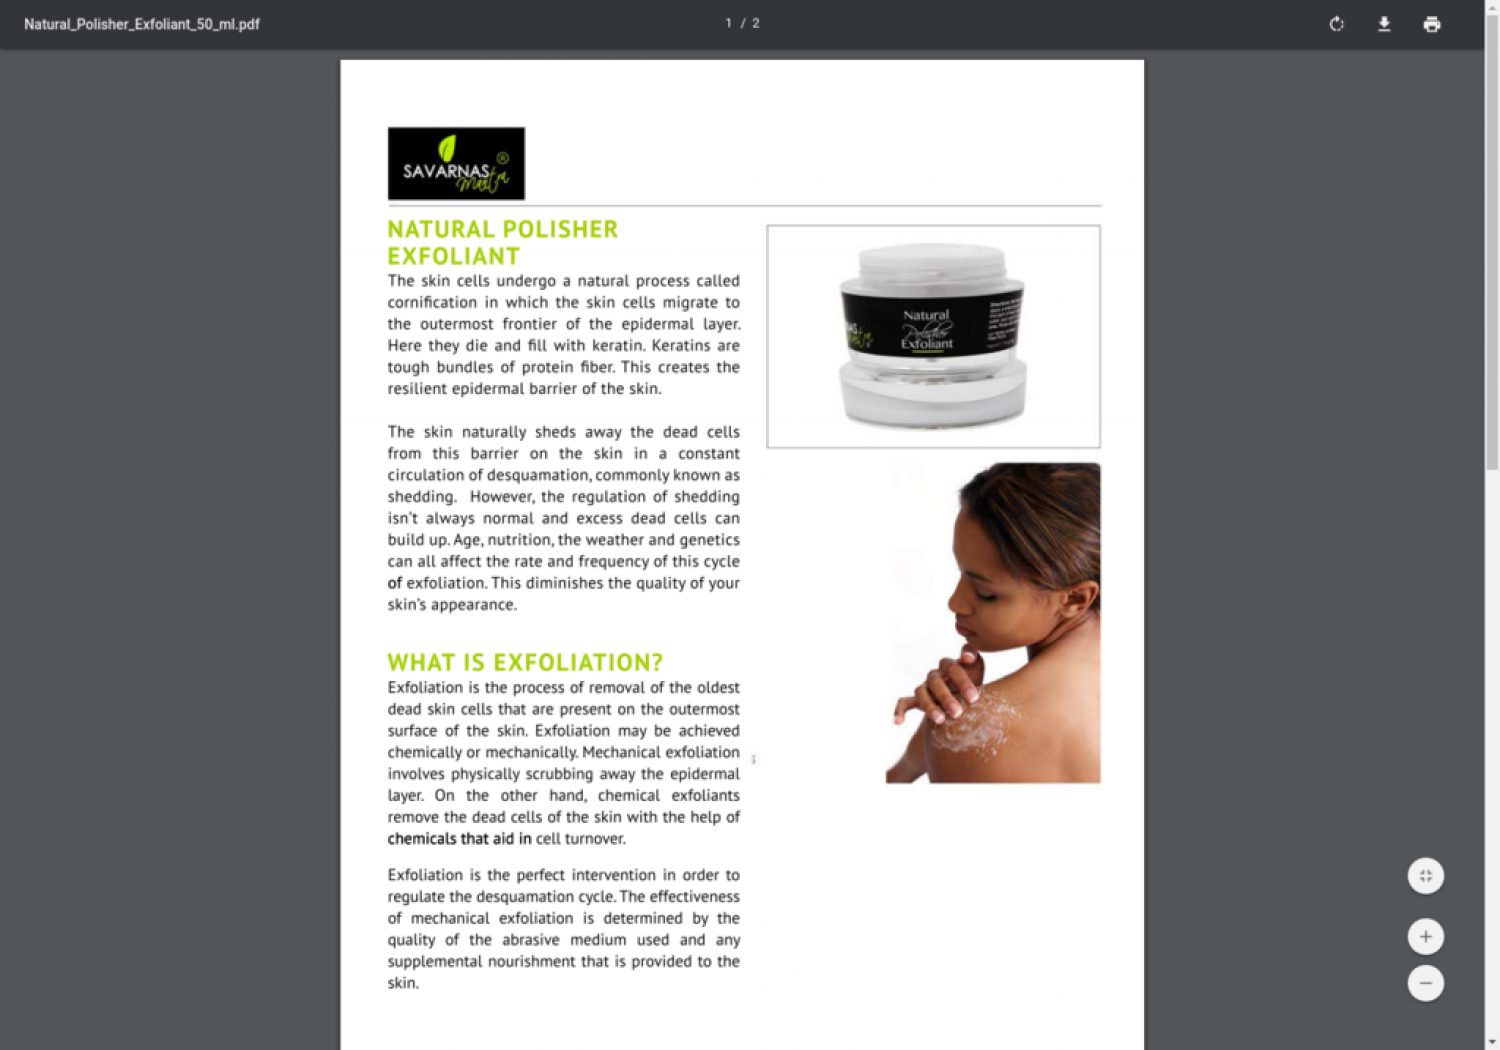 Natural Polisher Exfoliant - Shop Online Infographic